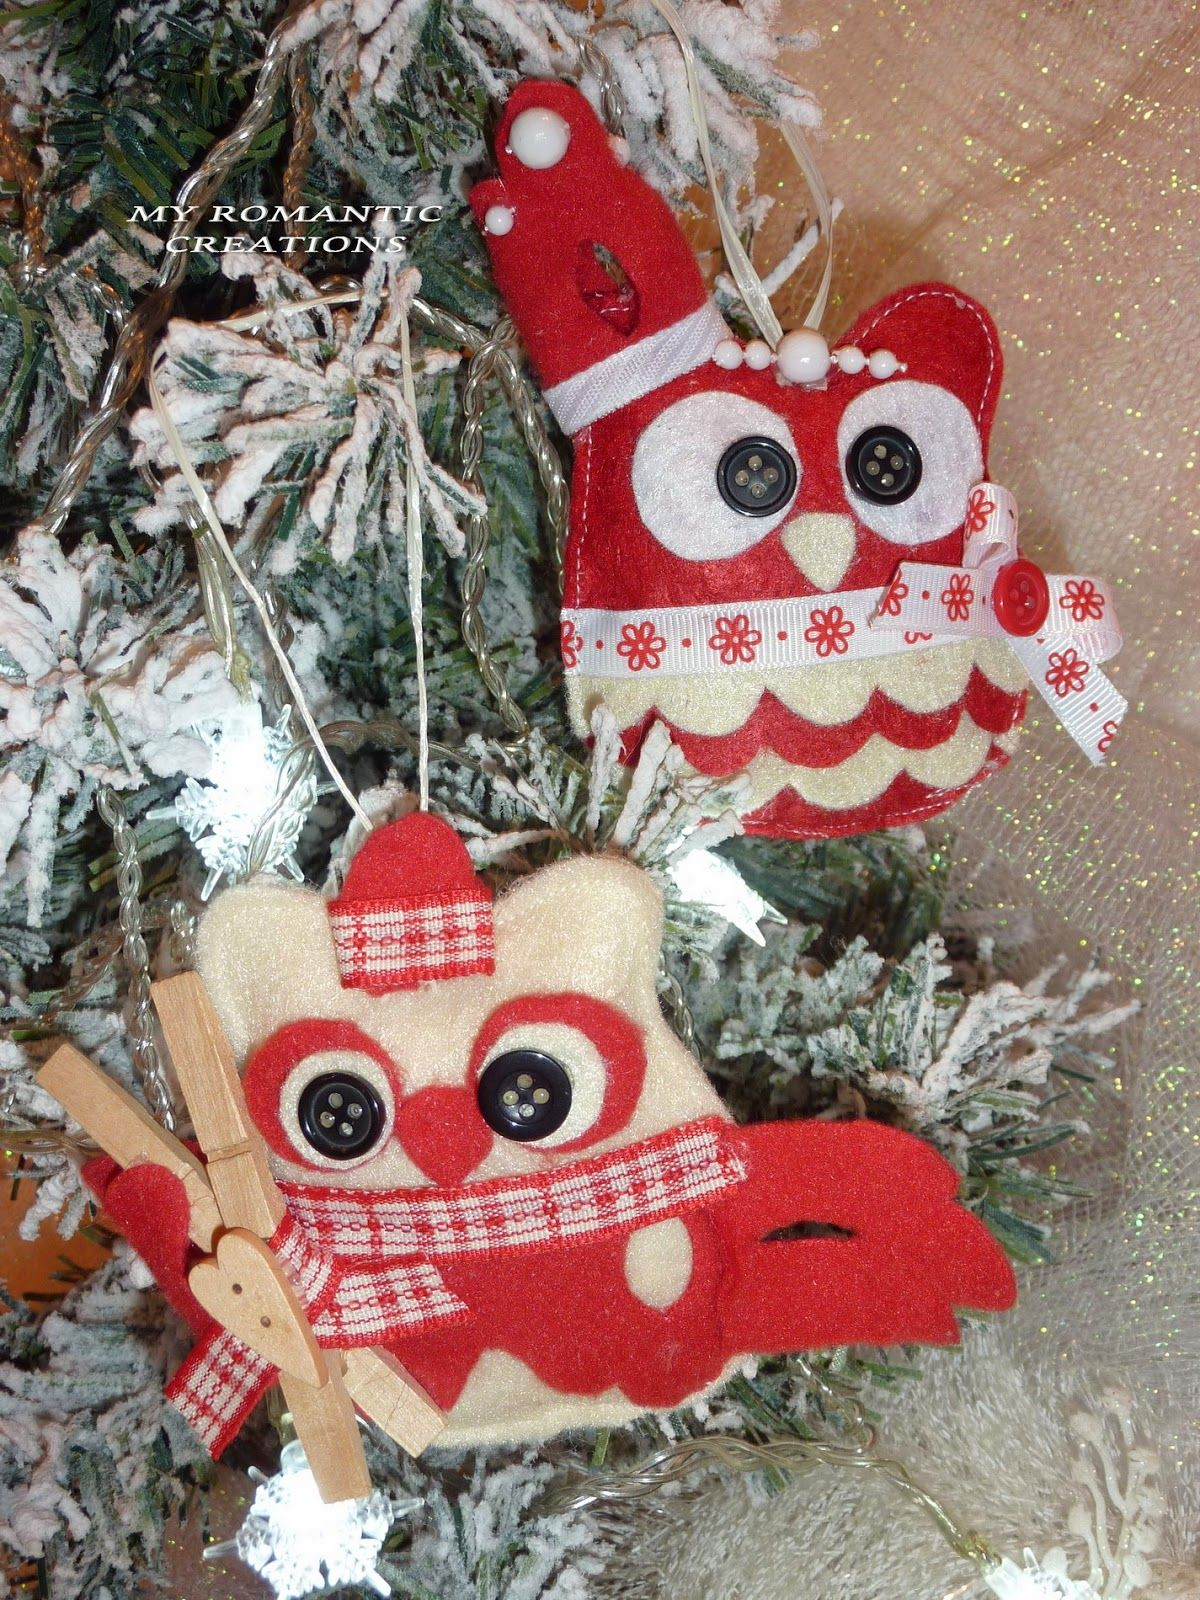 My Romantic Creations: Owls for Christmas.